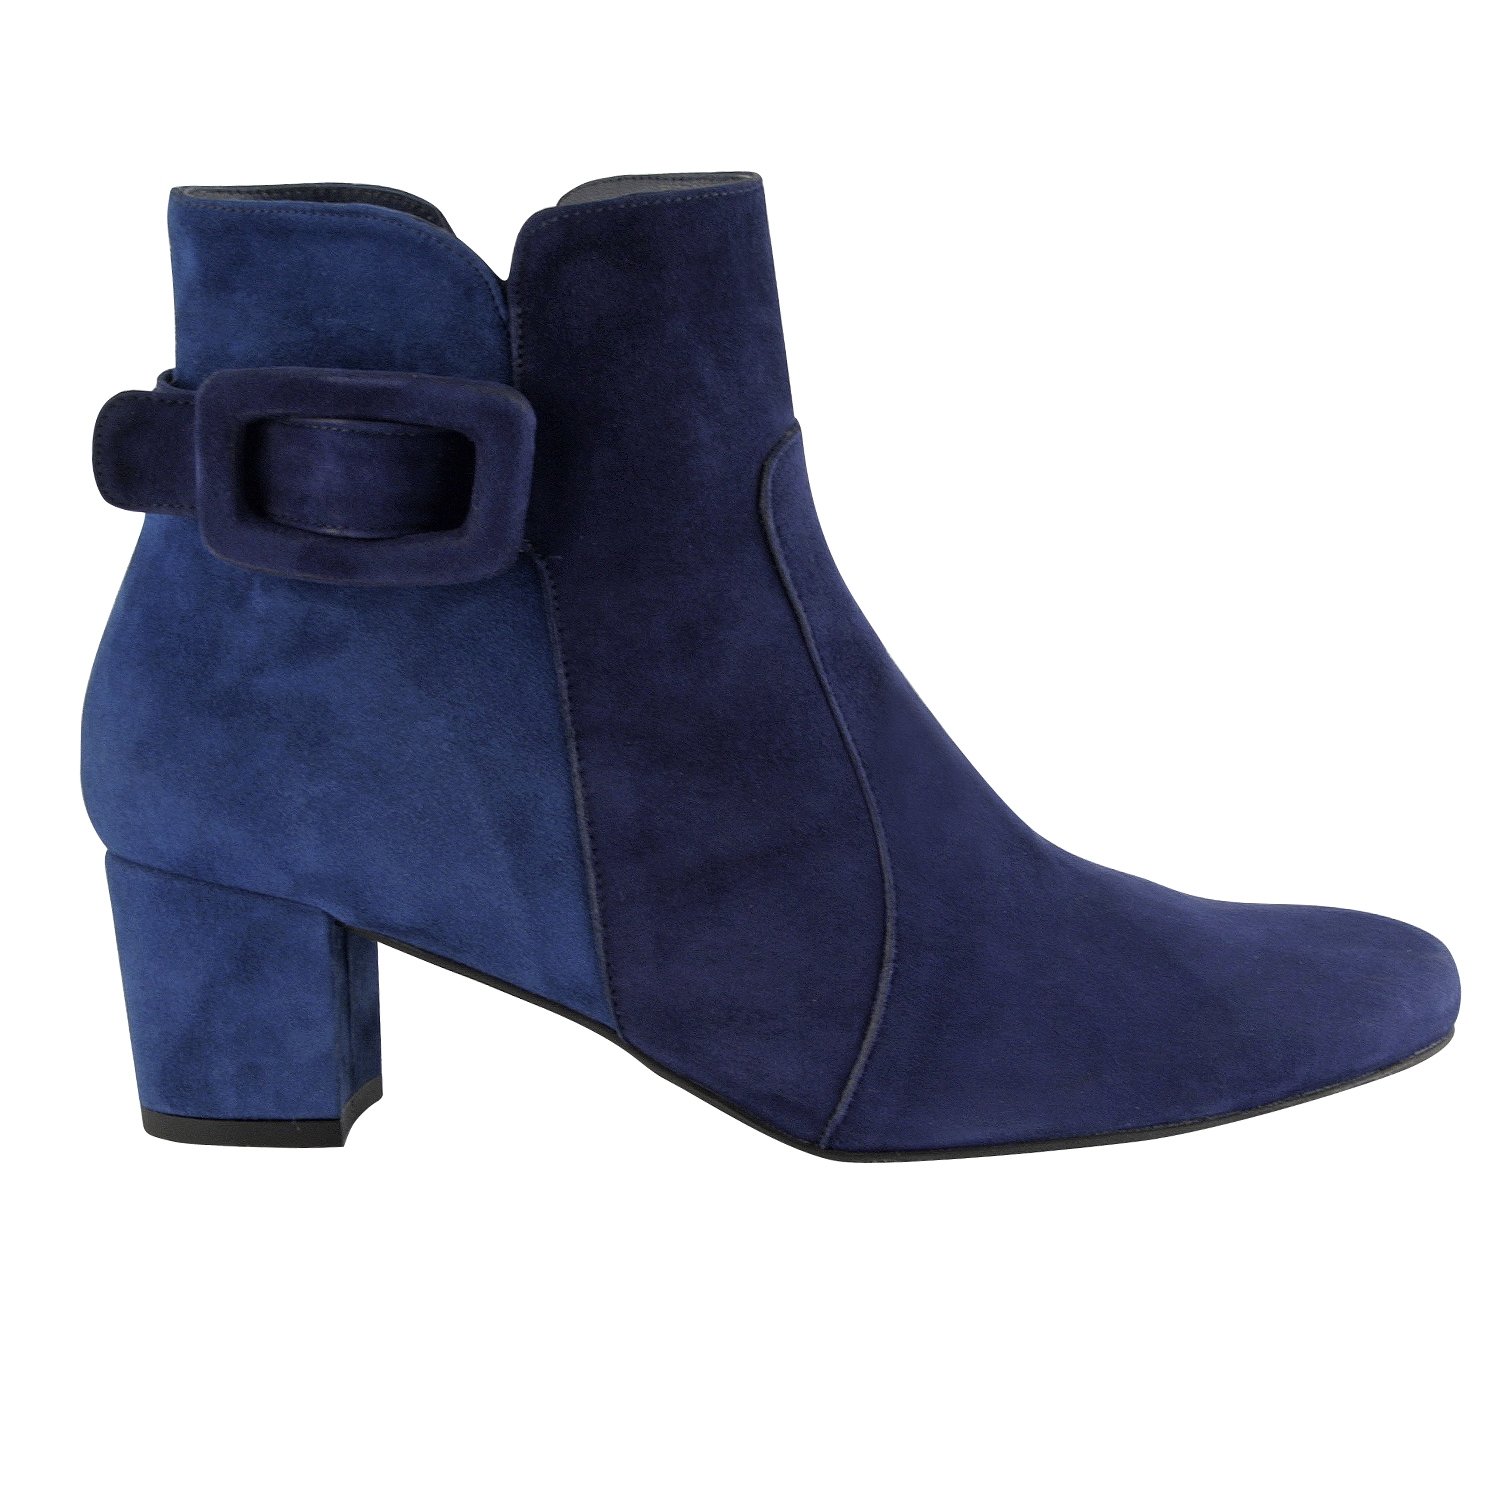 50cd1be34e5 Bottines femme Anouck en nubuck de cuir bleu - Exclusif